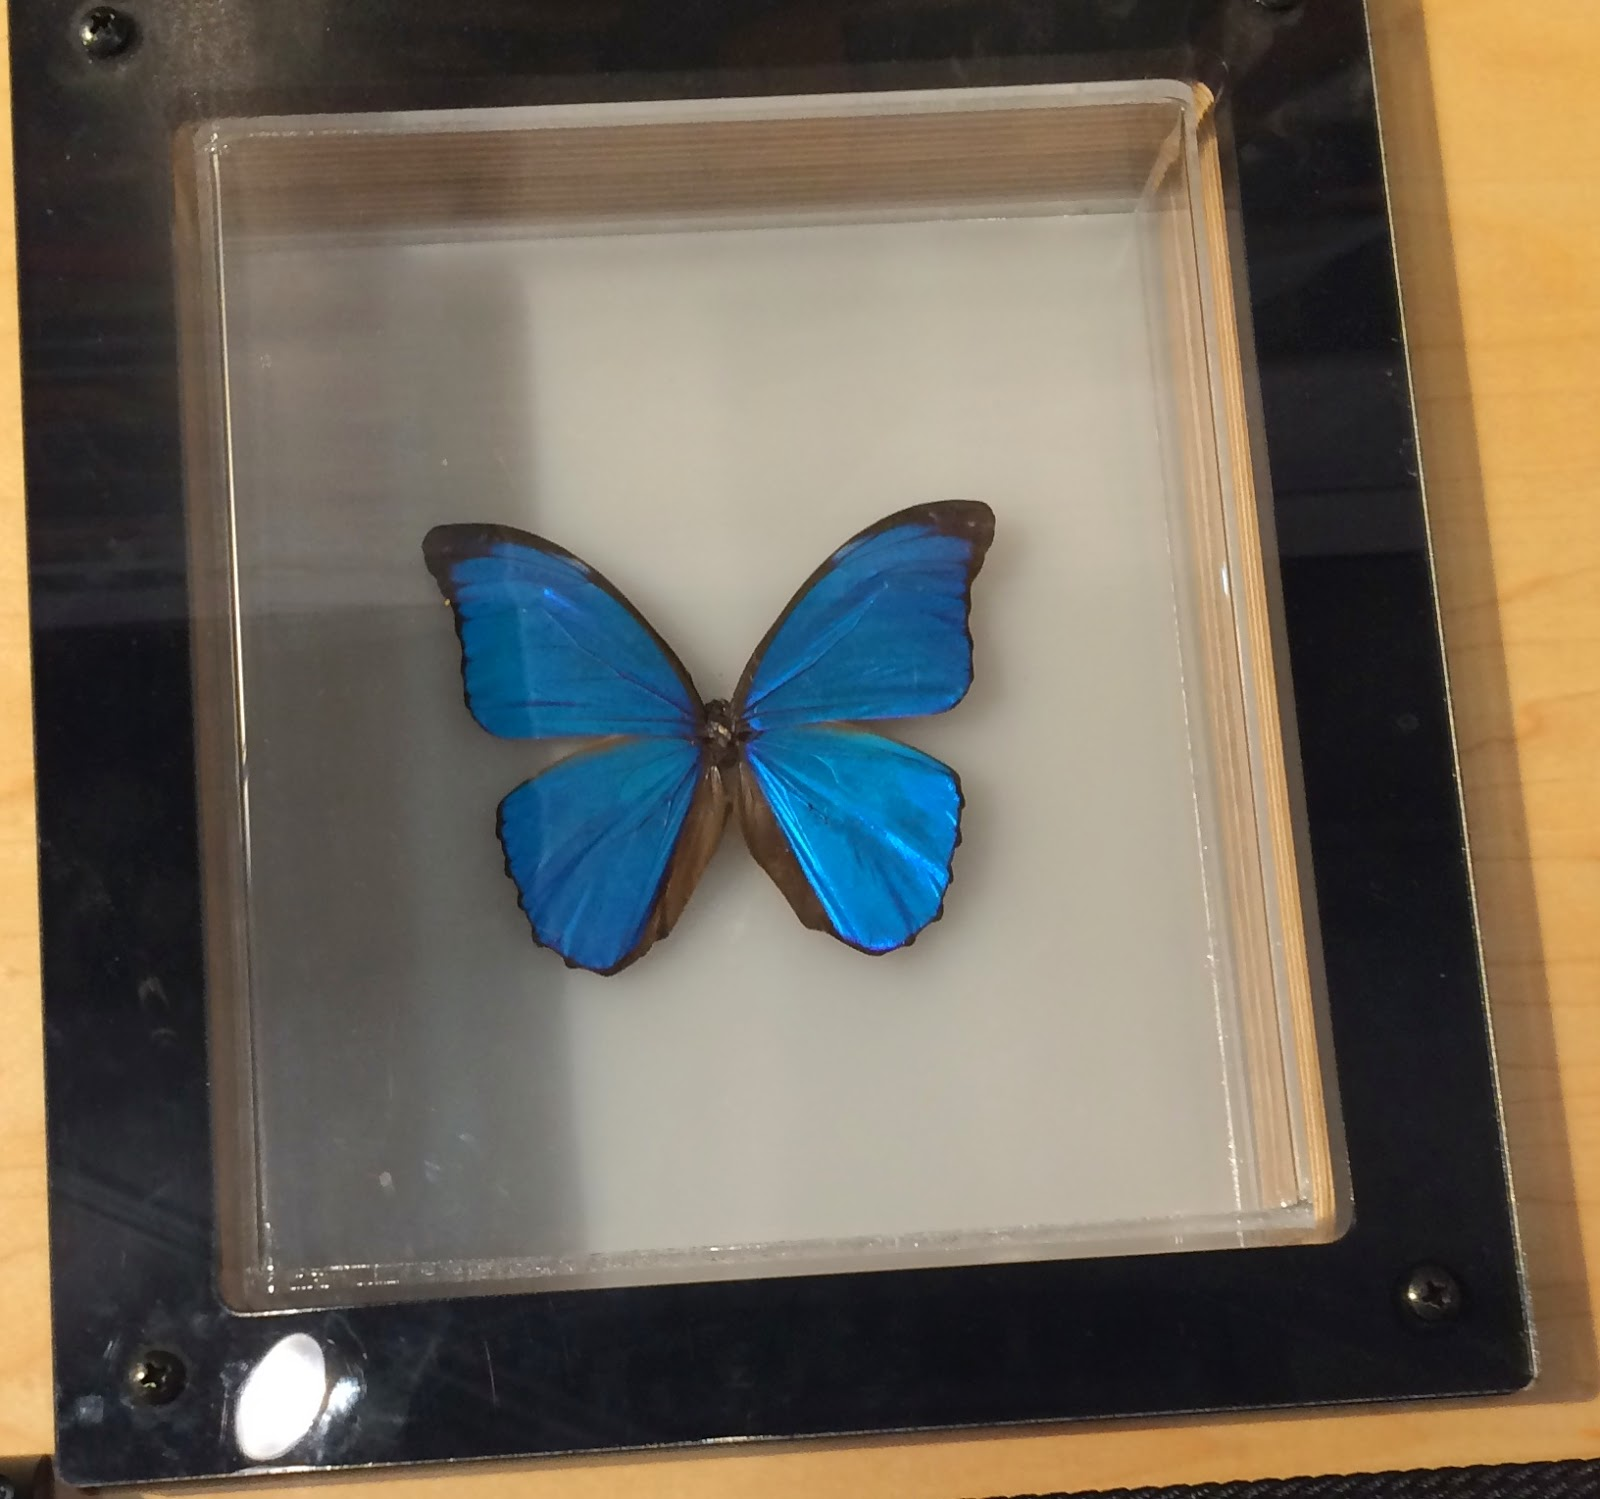 Blue Morpho Butterfly Nano Particles - no light